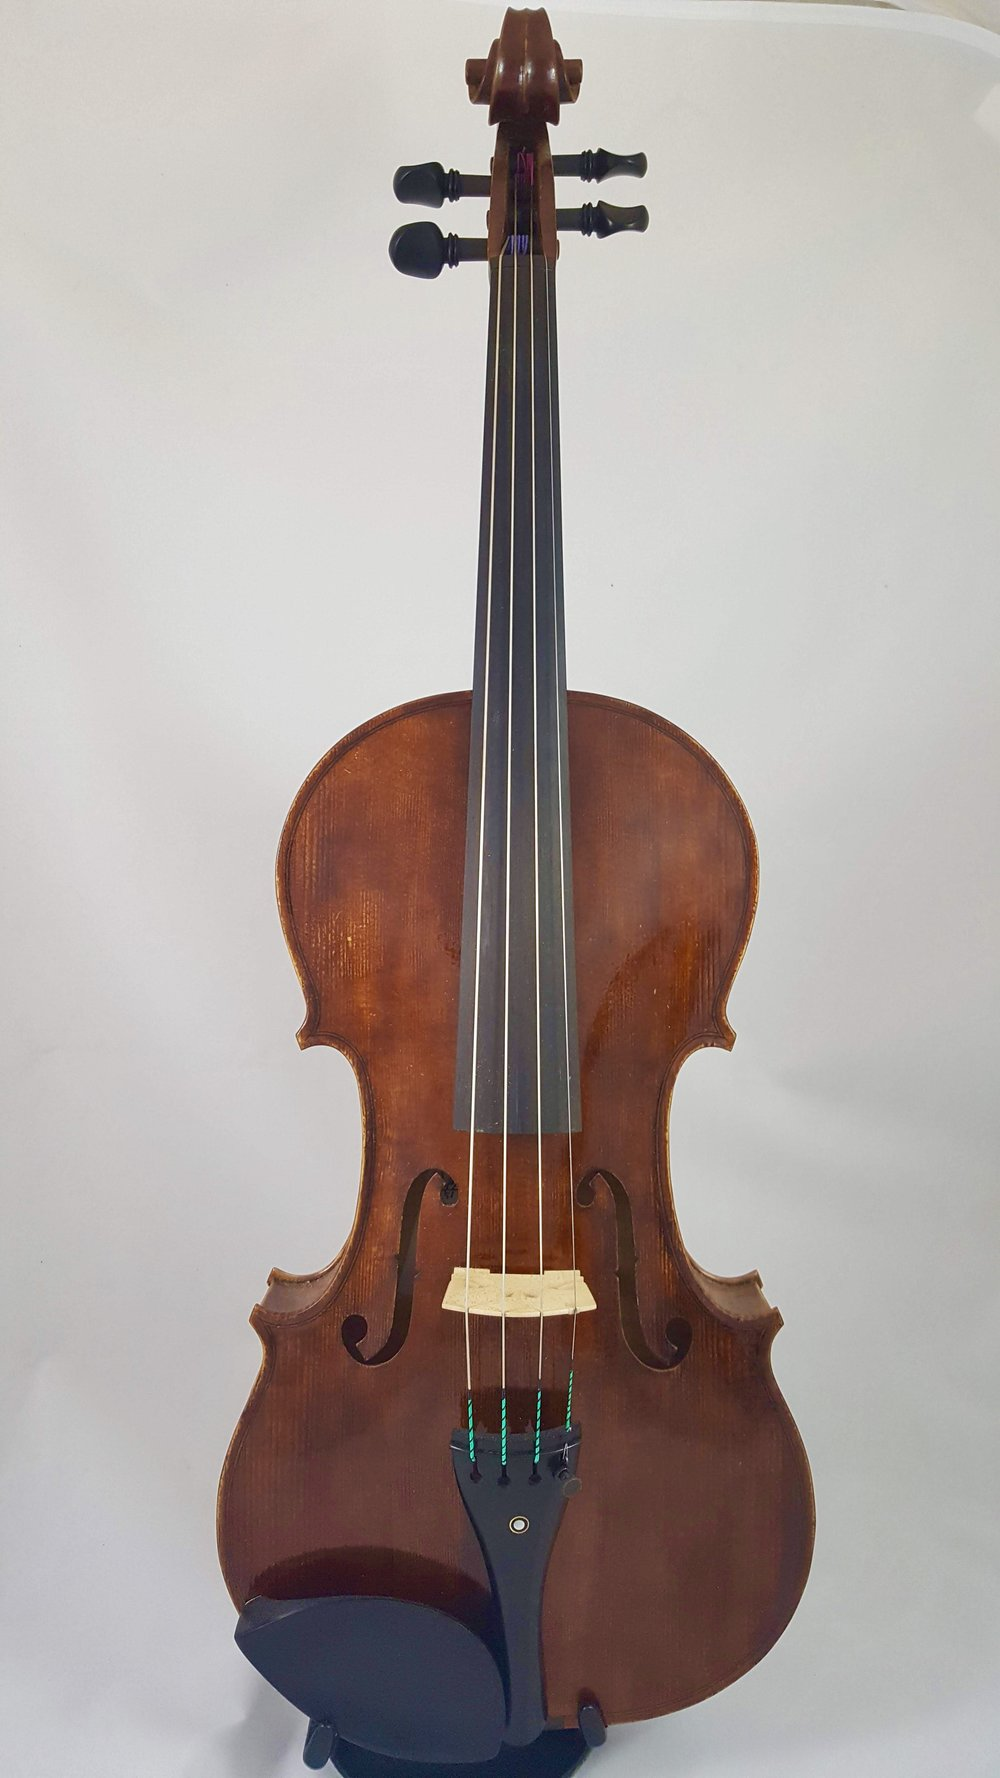 """Robyn Sullivan 15 3/4"""" viola, personal model. This slightly smaller viola combines playability with a full Resonant Tone - Price $6000*Currently at Chicago Strings"""